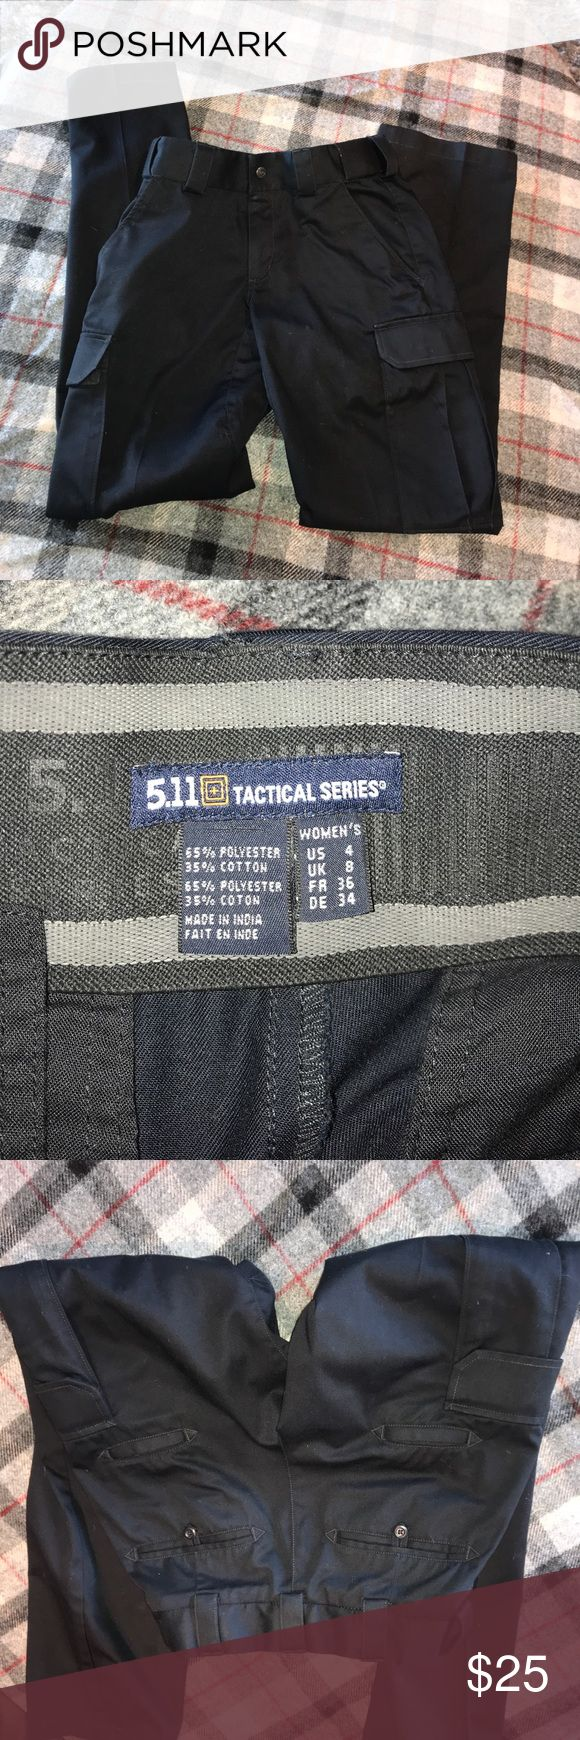 5.11 Tactical Series sz 4 Like new condition 5.11 Tactical Pants